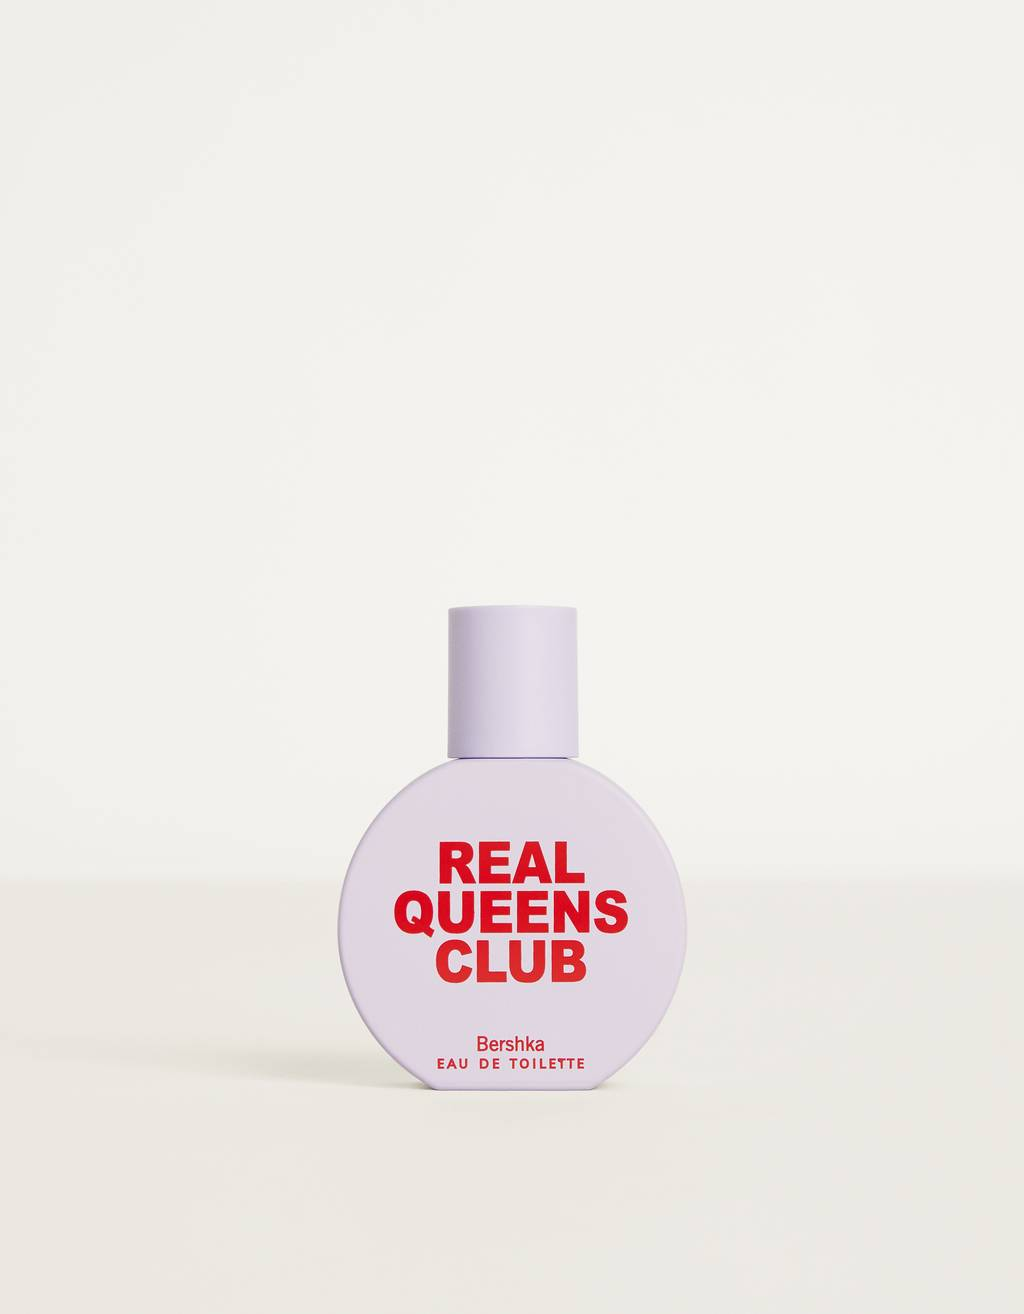 Real queens club Eau de toilette